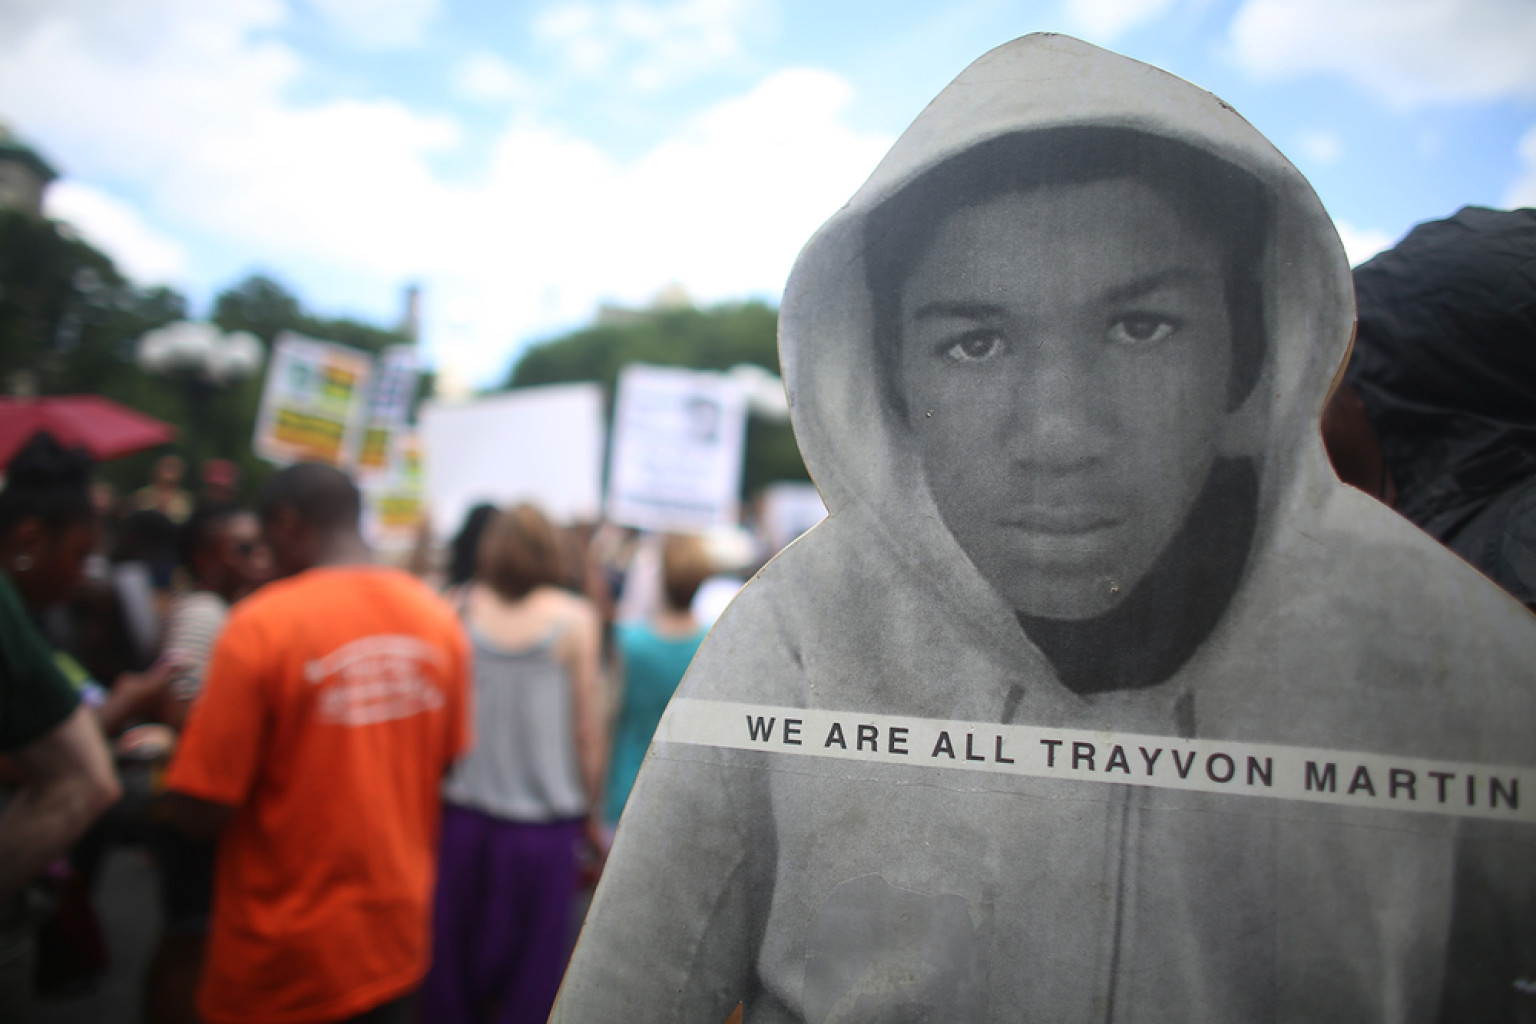 zimmerman vs trayvon Trayvon martin was in the wrong place at the wrong time walking back from a 7-eleven to the sanford, florida townhouse of his father's fiancee on a dark and rainy february evening in 2012, martin aroused the suspicions of neighborhood watch leader george zimmerman, setting in motion a chain of events that led to martin's death and one of the most intensely followed trials of the twenty-first.